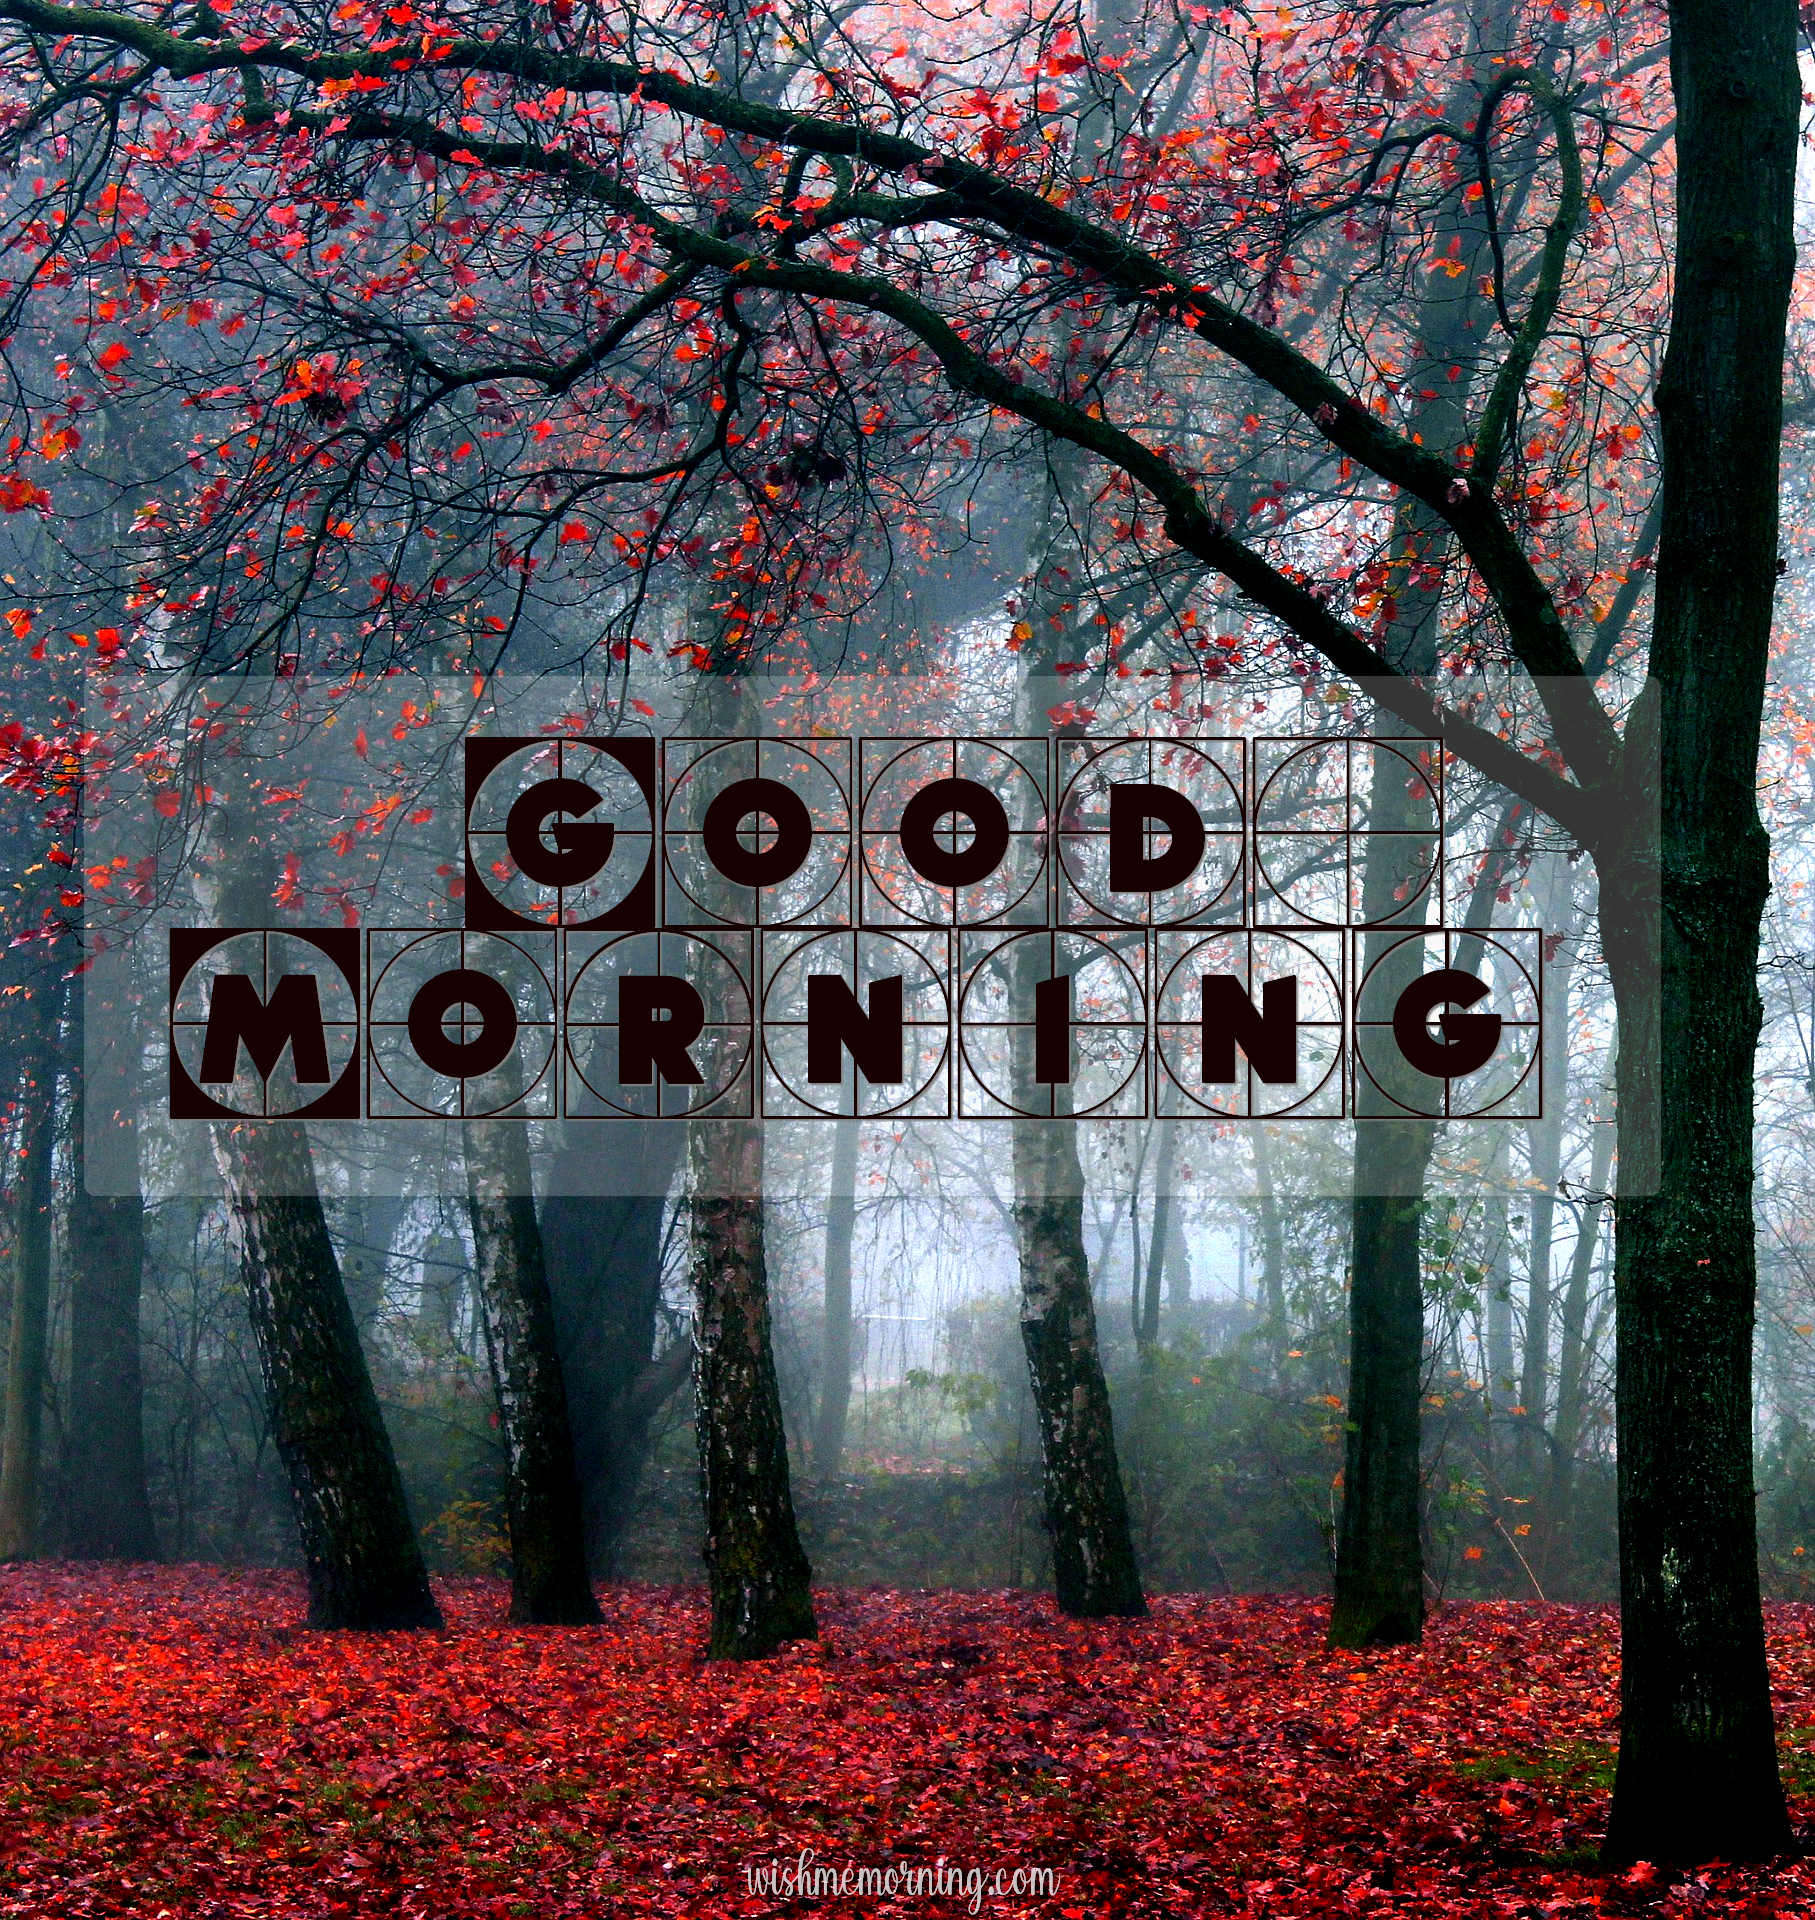 Beautiful Trees Woods Nature Images Wishes wishmemorning.com 4